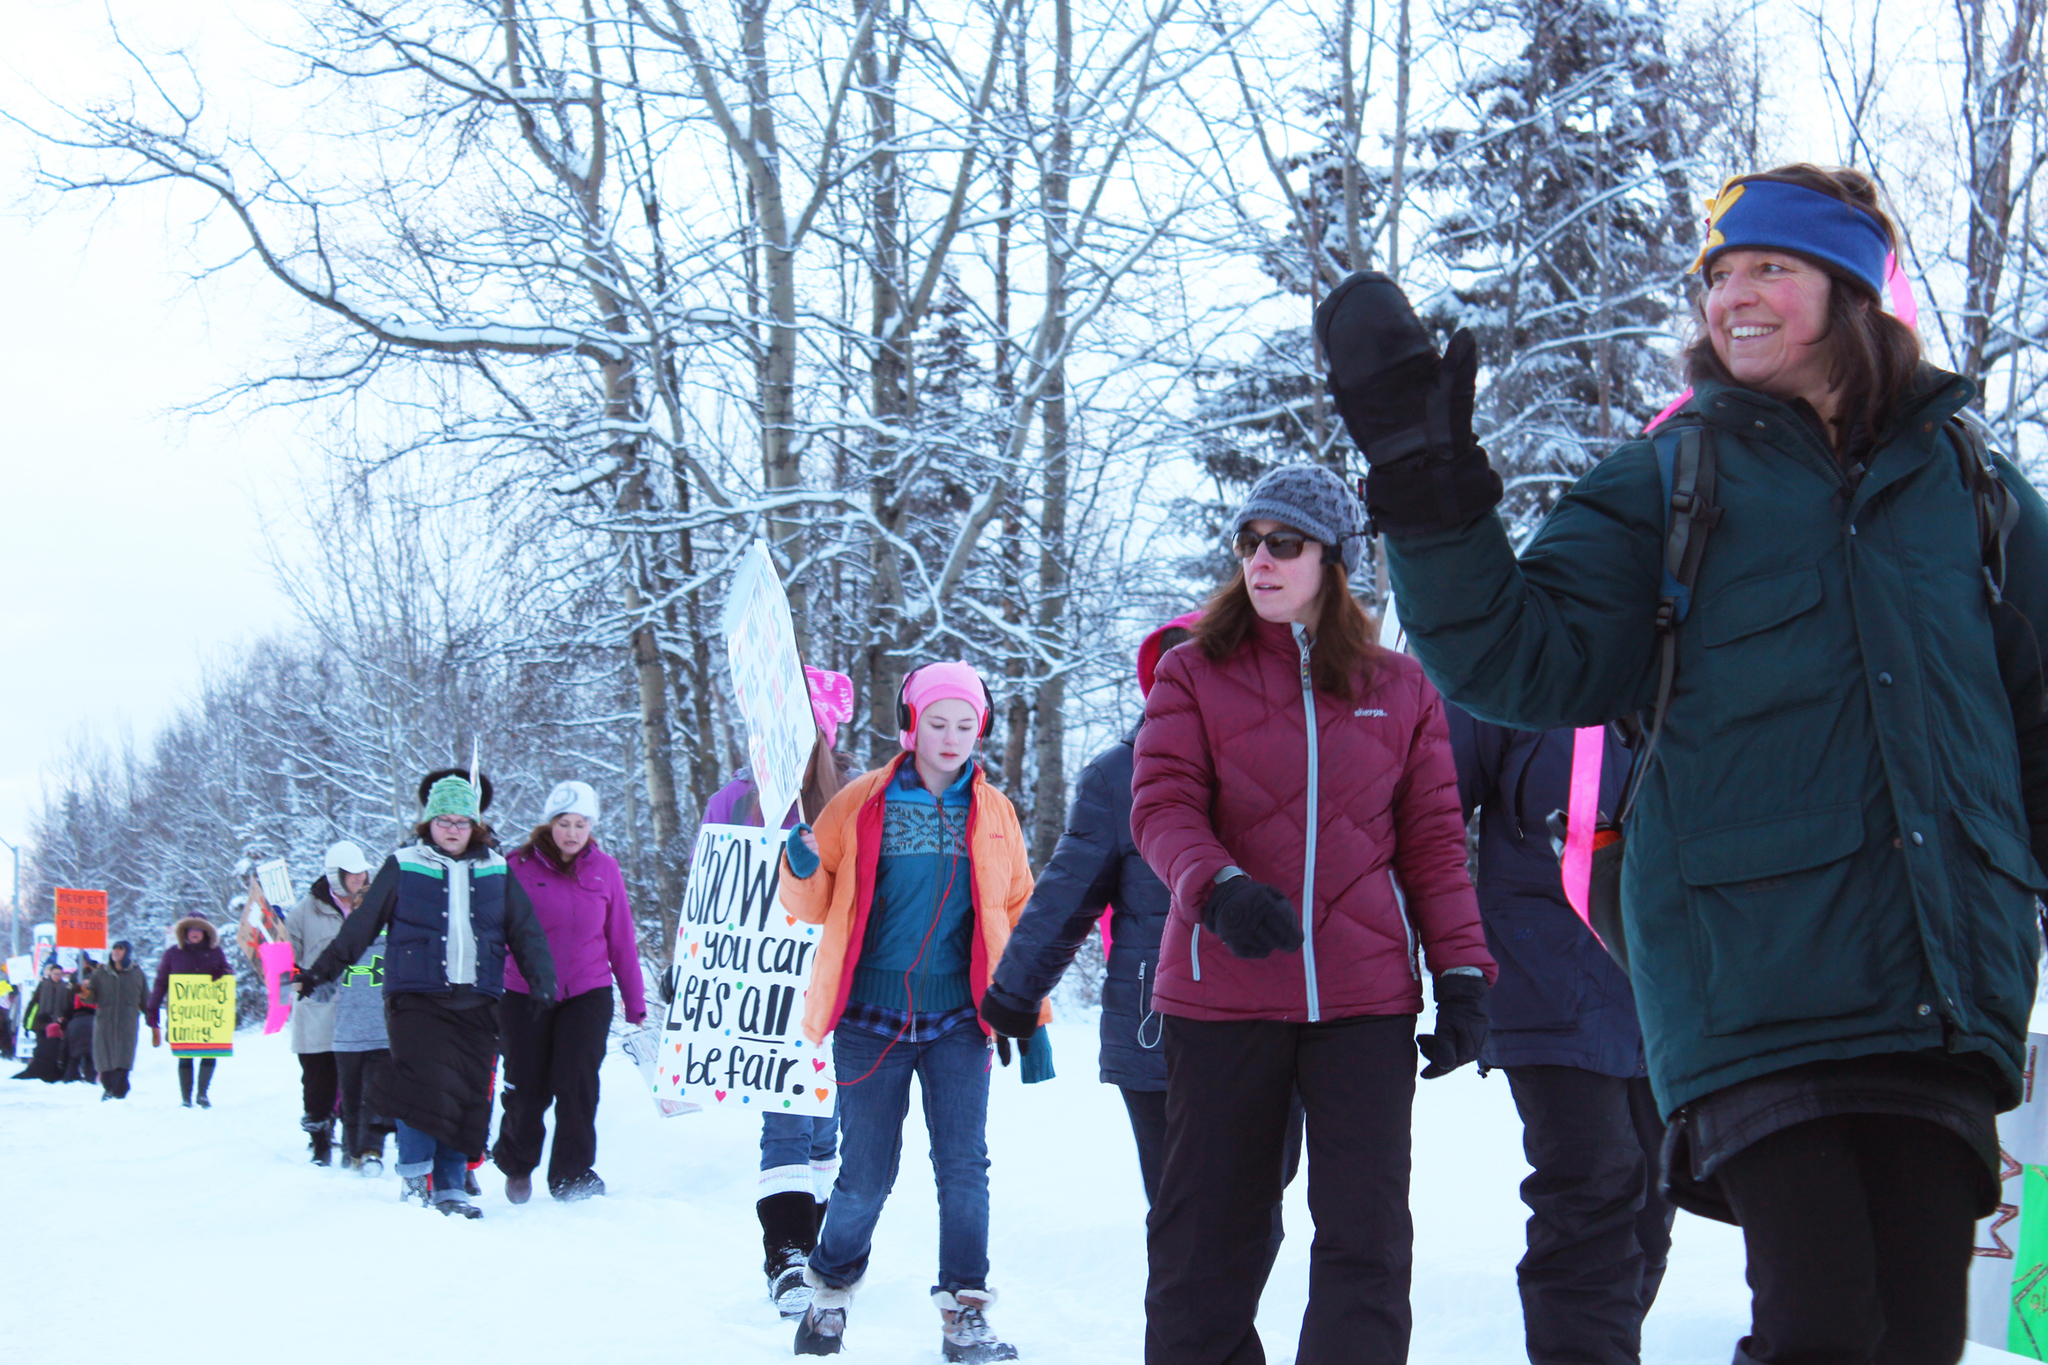 Area residents wave at cars passing by while they march down Binkley Street during a Women's March held Saturday, Jan. 21, 2017 in Soldotna, Alaska. Marchers held signs advocating for a number of issues, from women's reproductive rights to clean water. (Megan Pacer/Peninsula Clarion)